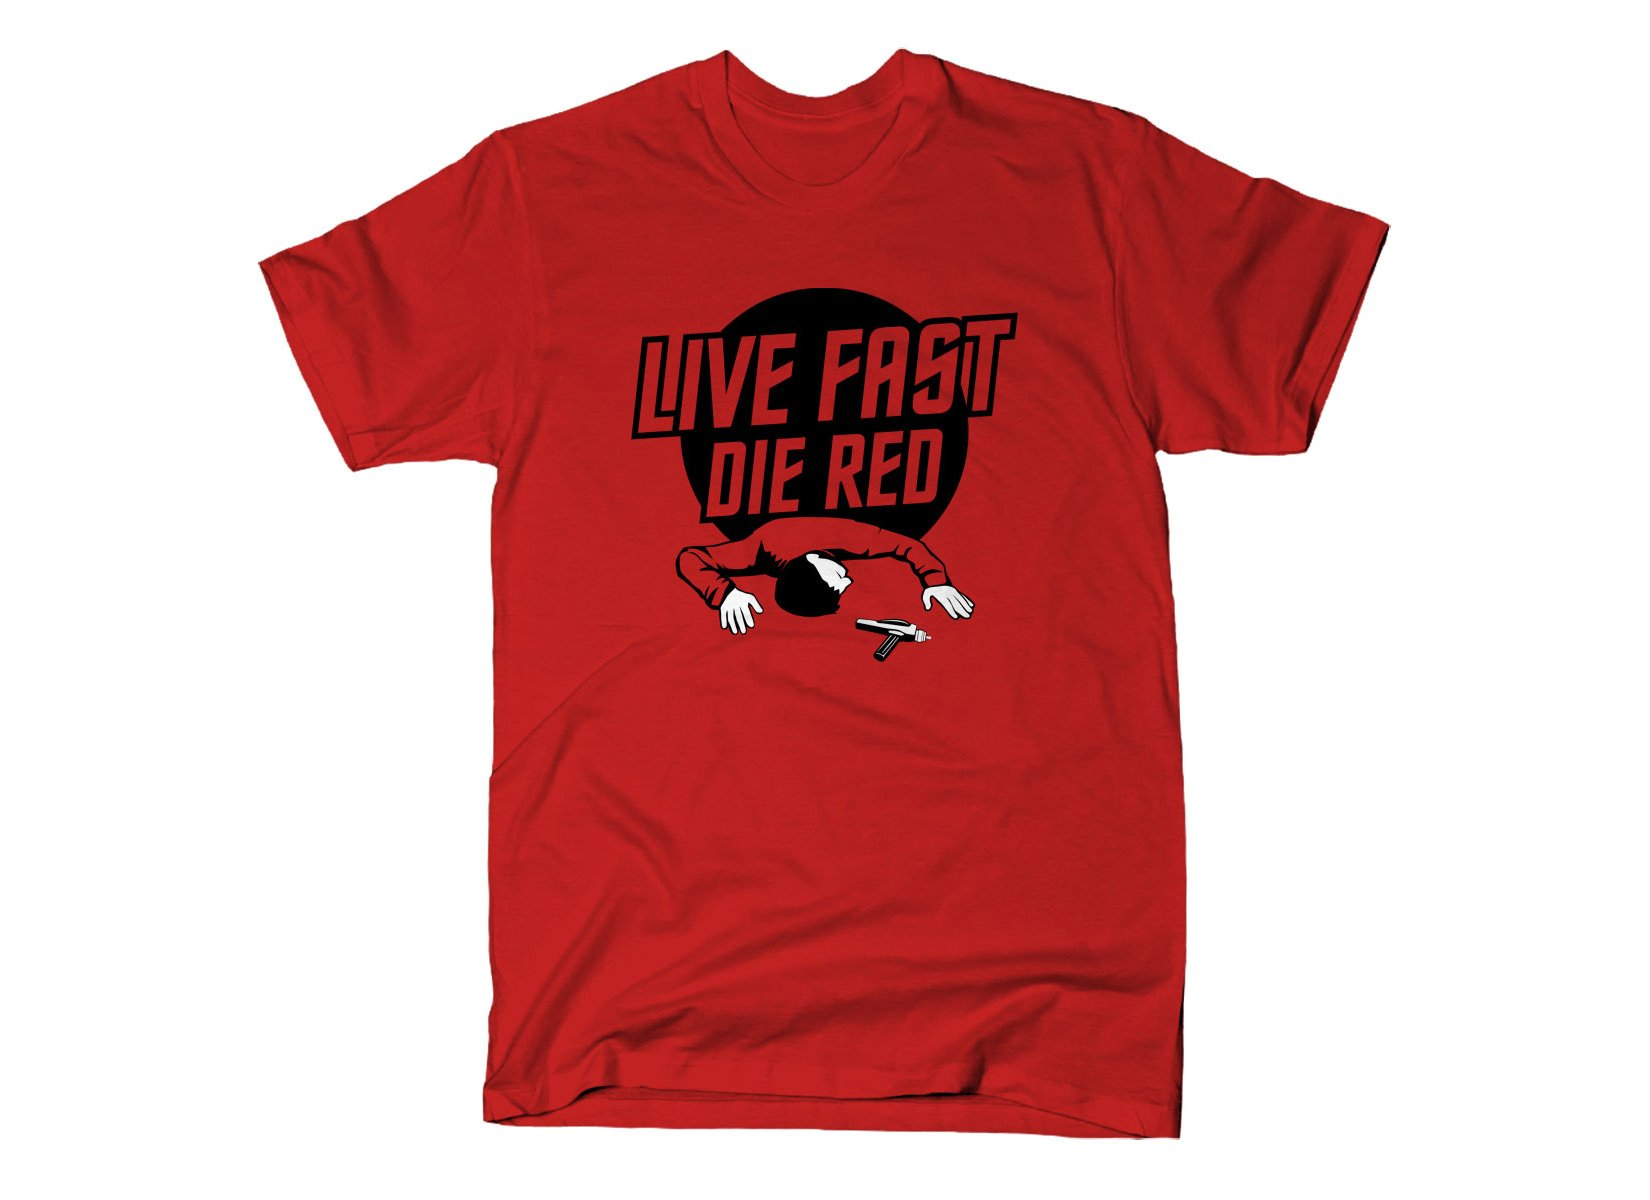 Live Fast Die Red on Mens T-Shirt